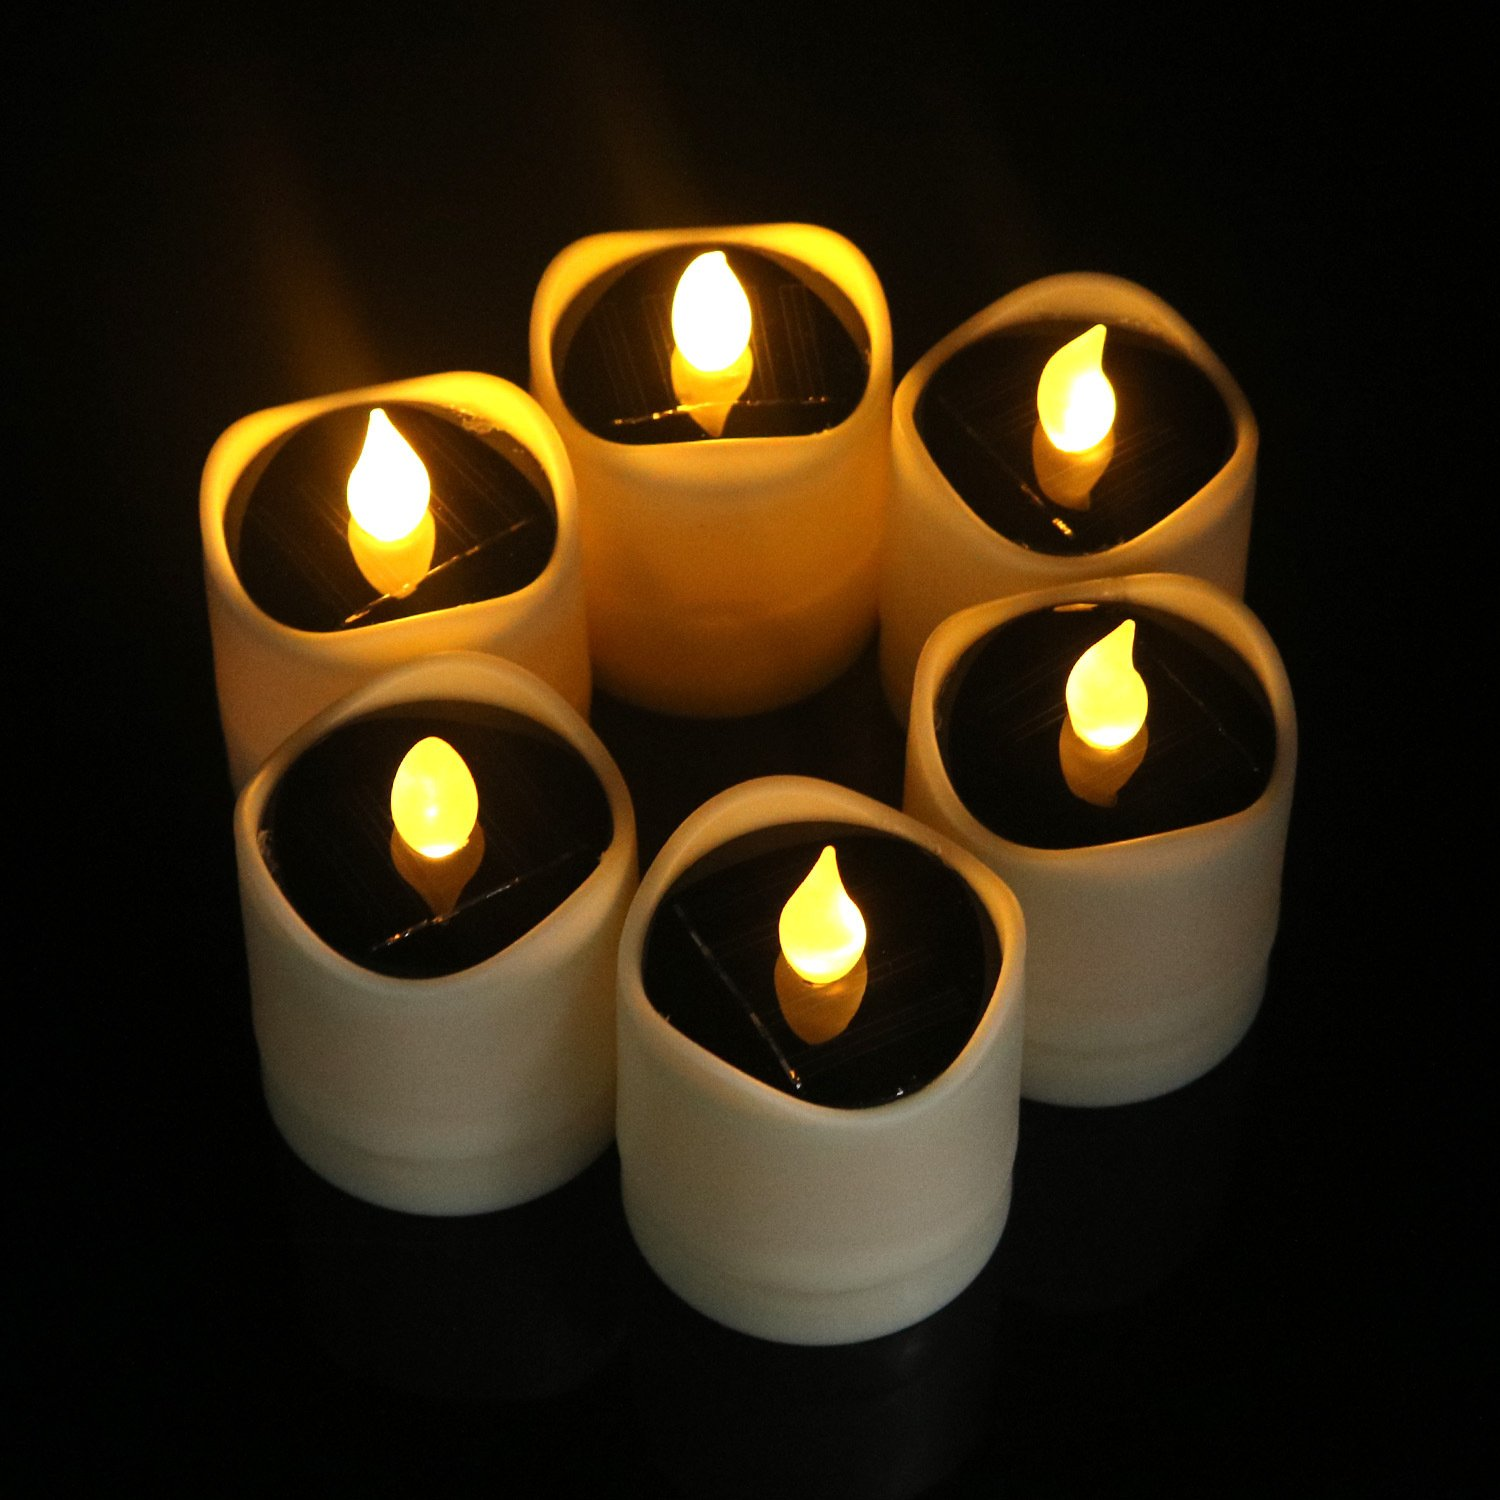 6 Pcs Solar LED Candles Waterproof Romantic Electronic Tealight Solar Candles Fake Candles Solar Emergency Night Light for Camping Traveling Outdoor Home Party Decoration (Amber-yellow Flickering) by Little bees (Image #2)